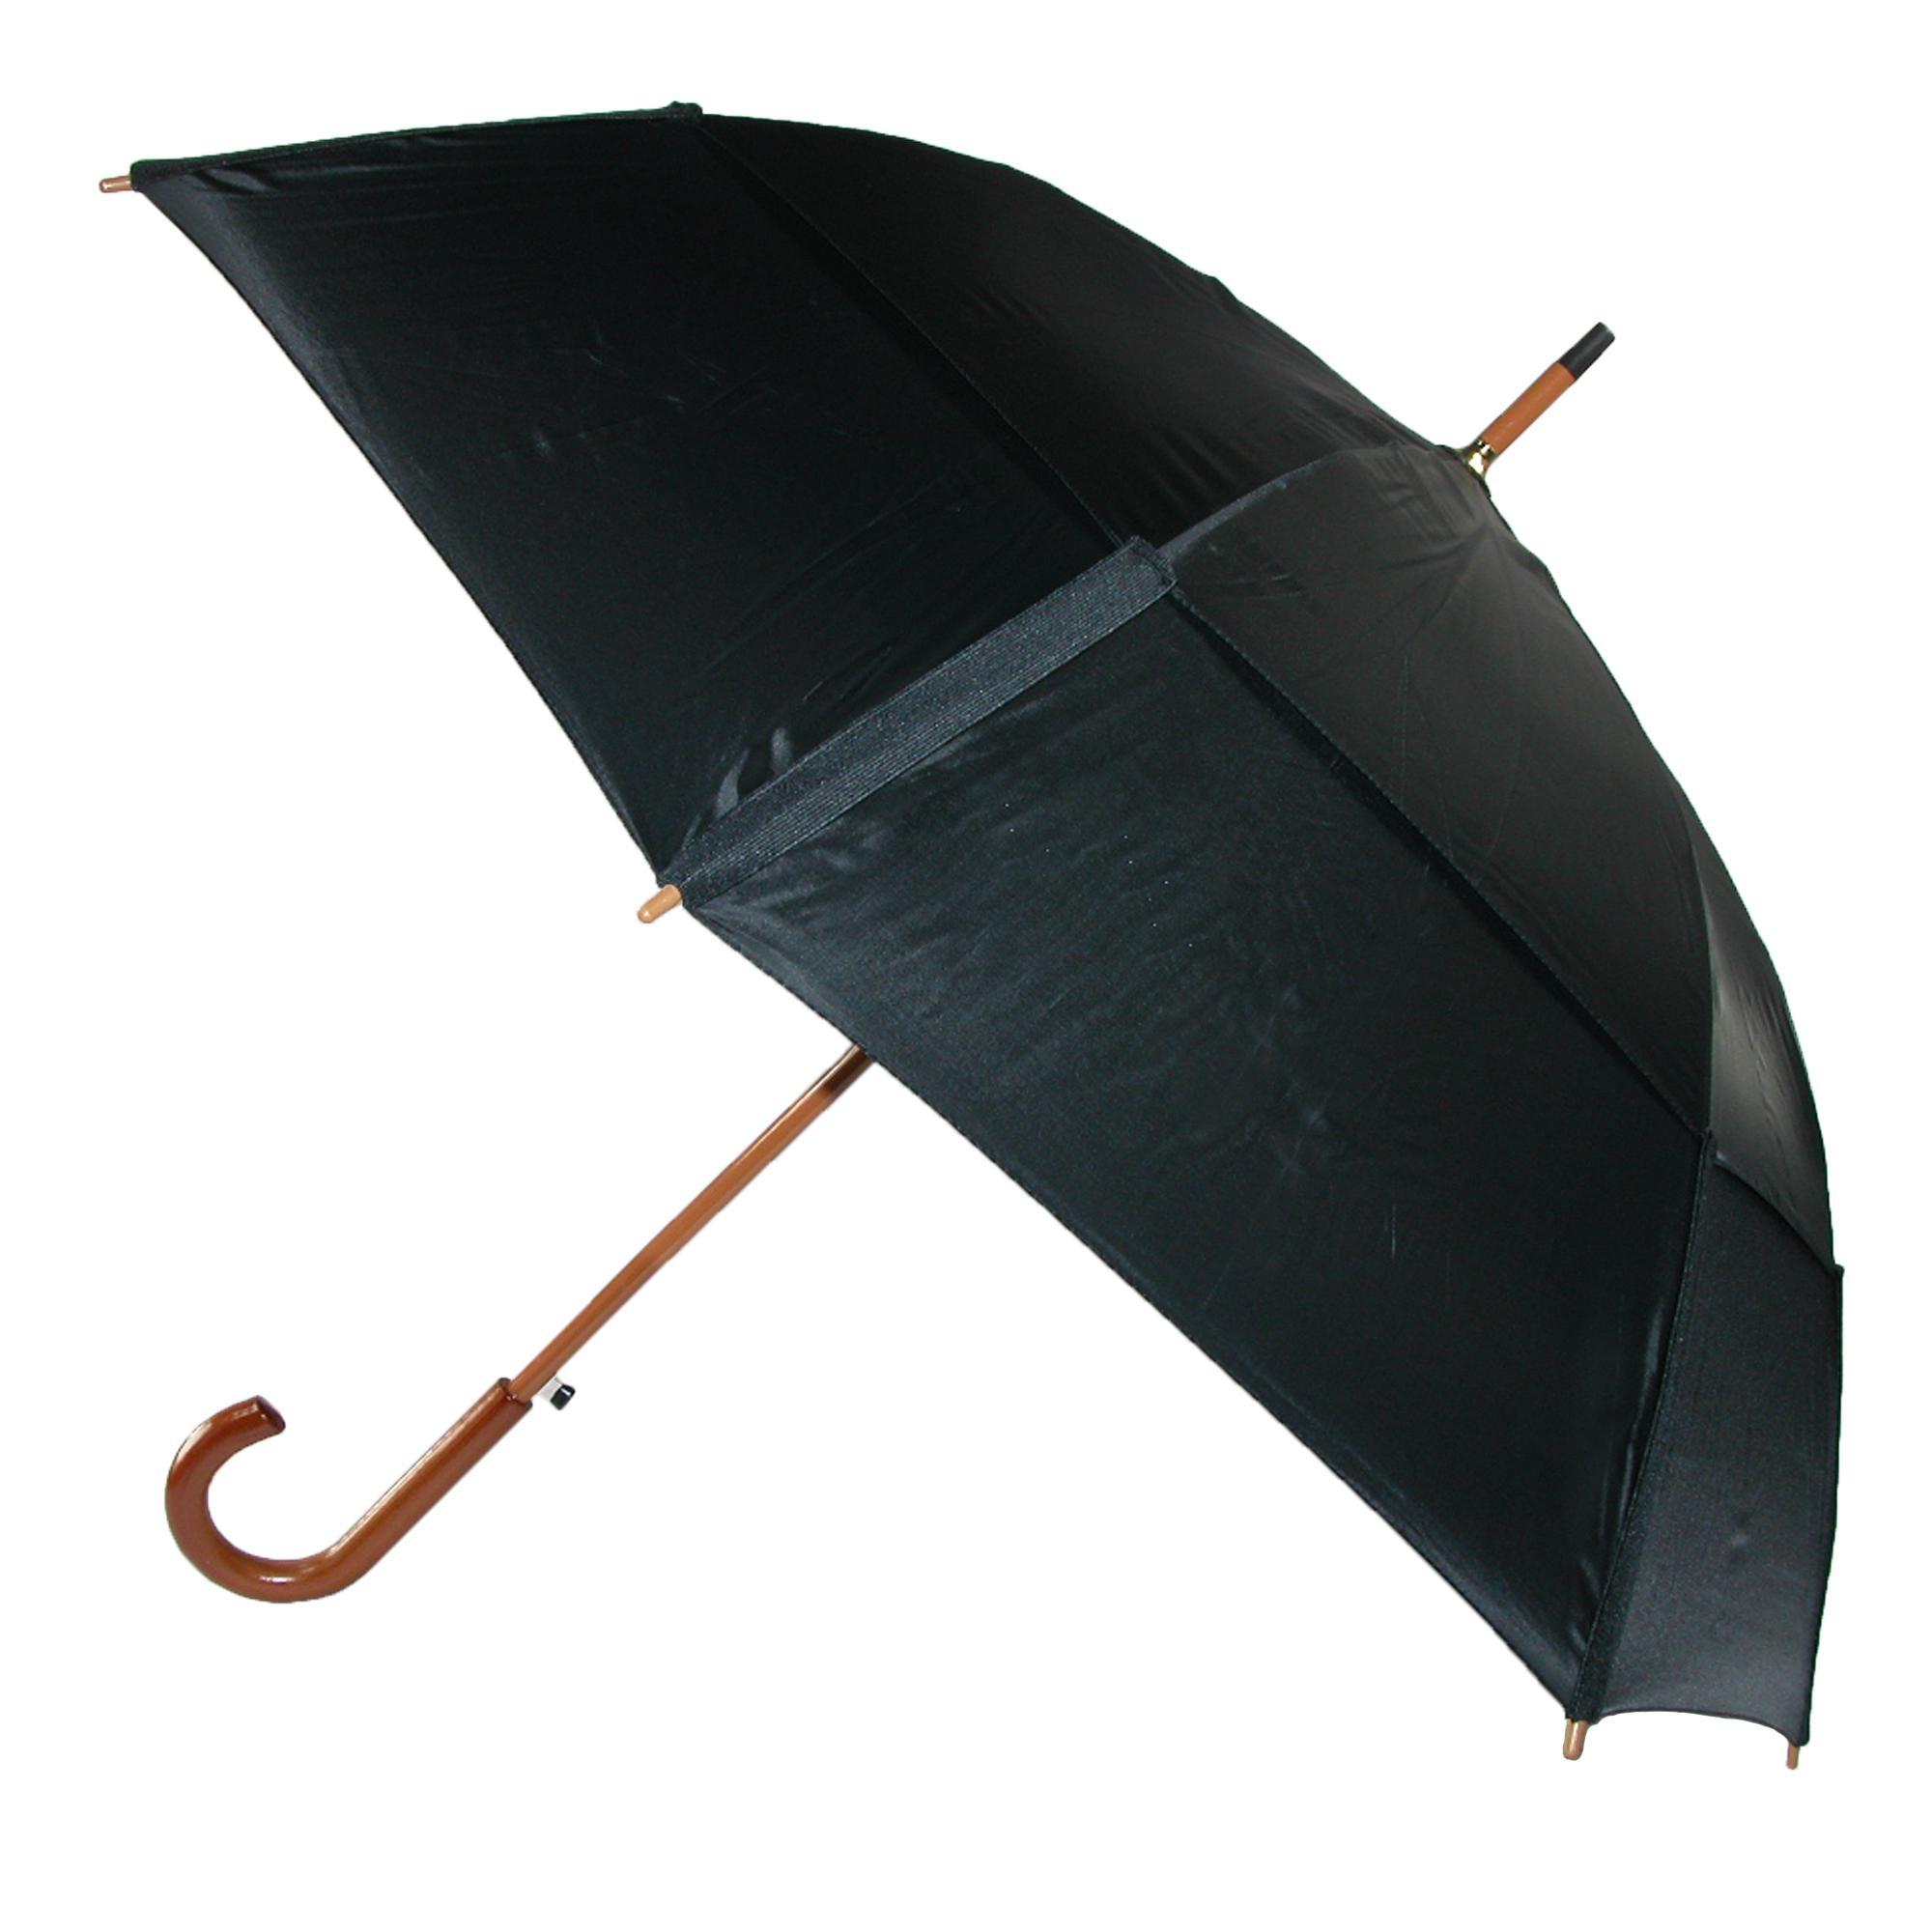 Gustbuster Auto Open Vented Stick Umbrella with Hook Hand...